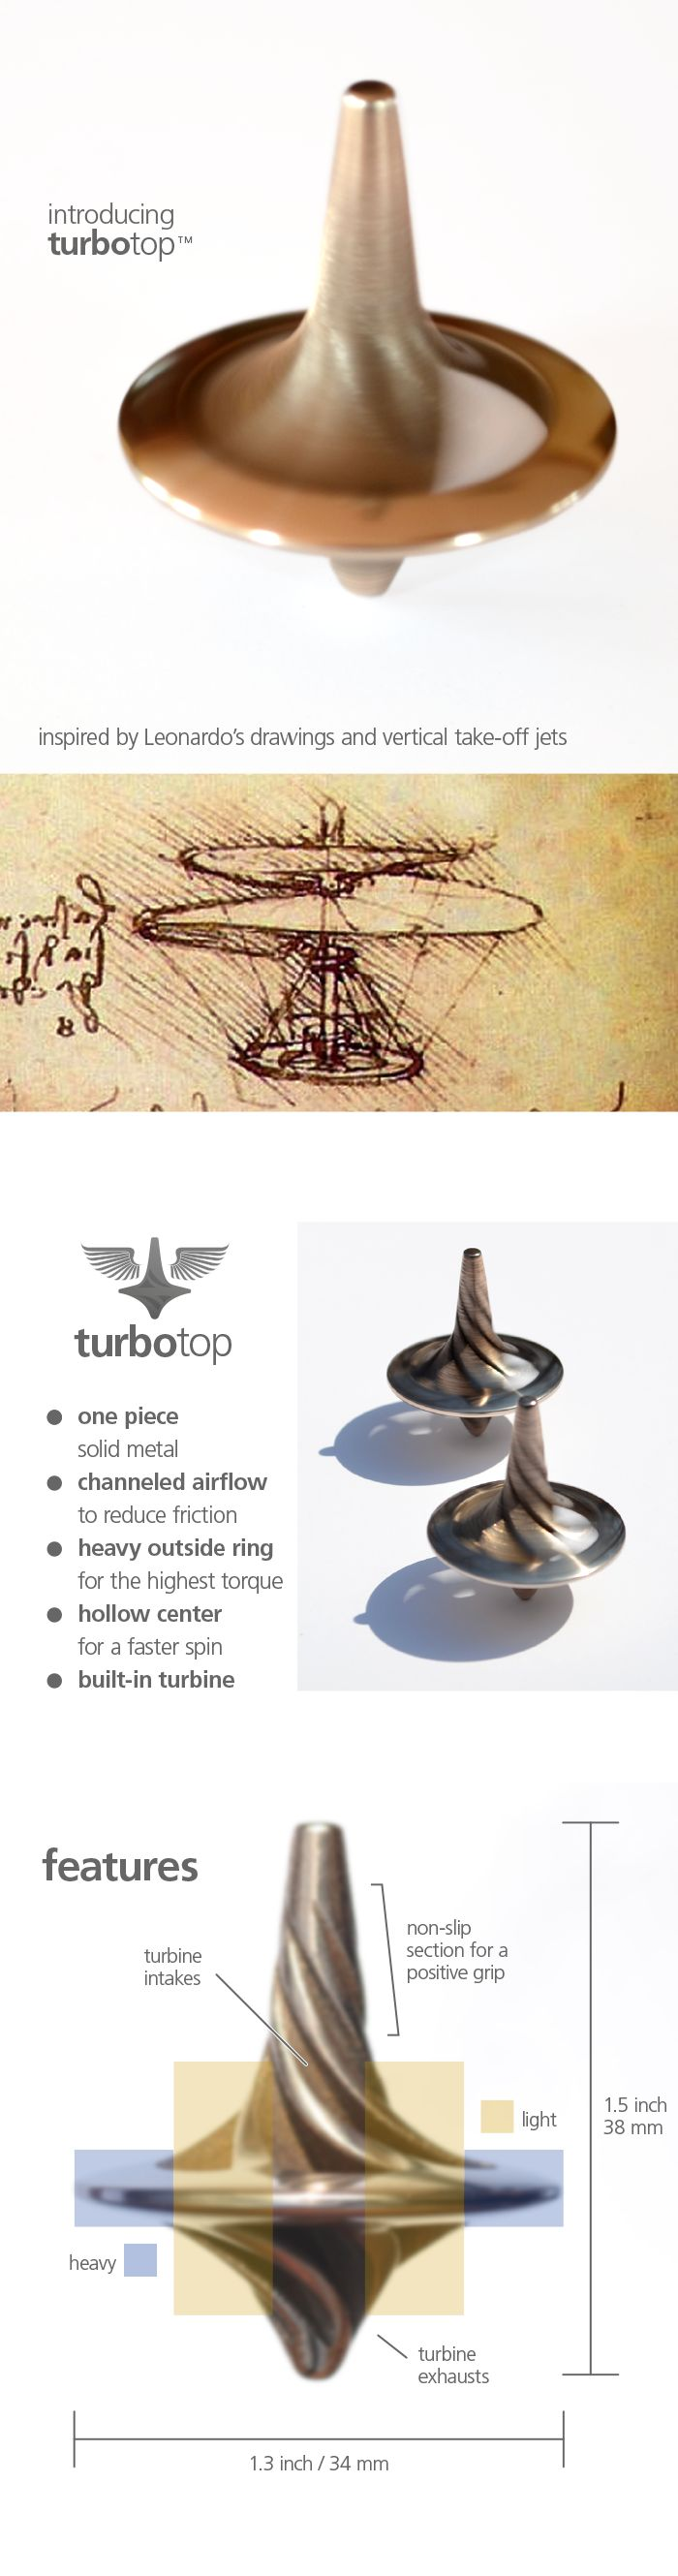 turbotop™ - a mesmerizing spinning top with turbo blades by Tom Leszczynski — Kickstarter